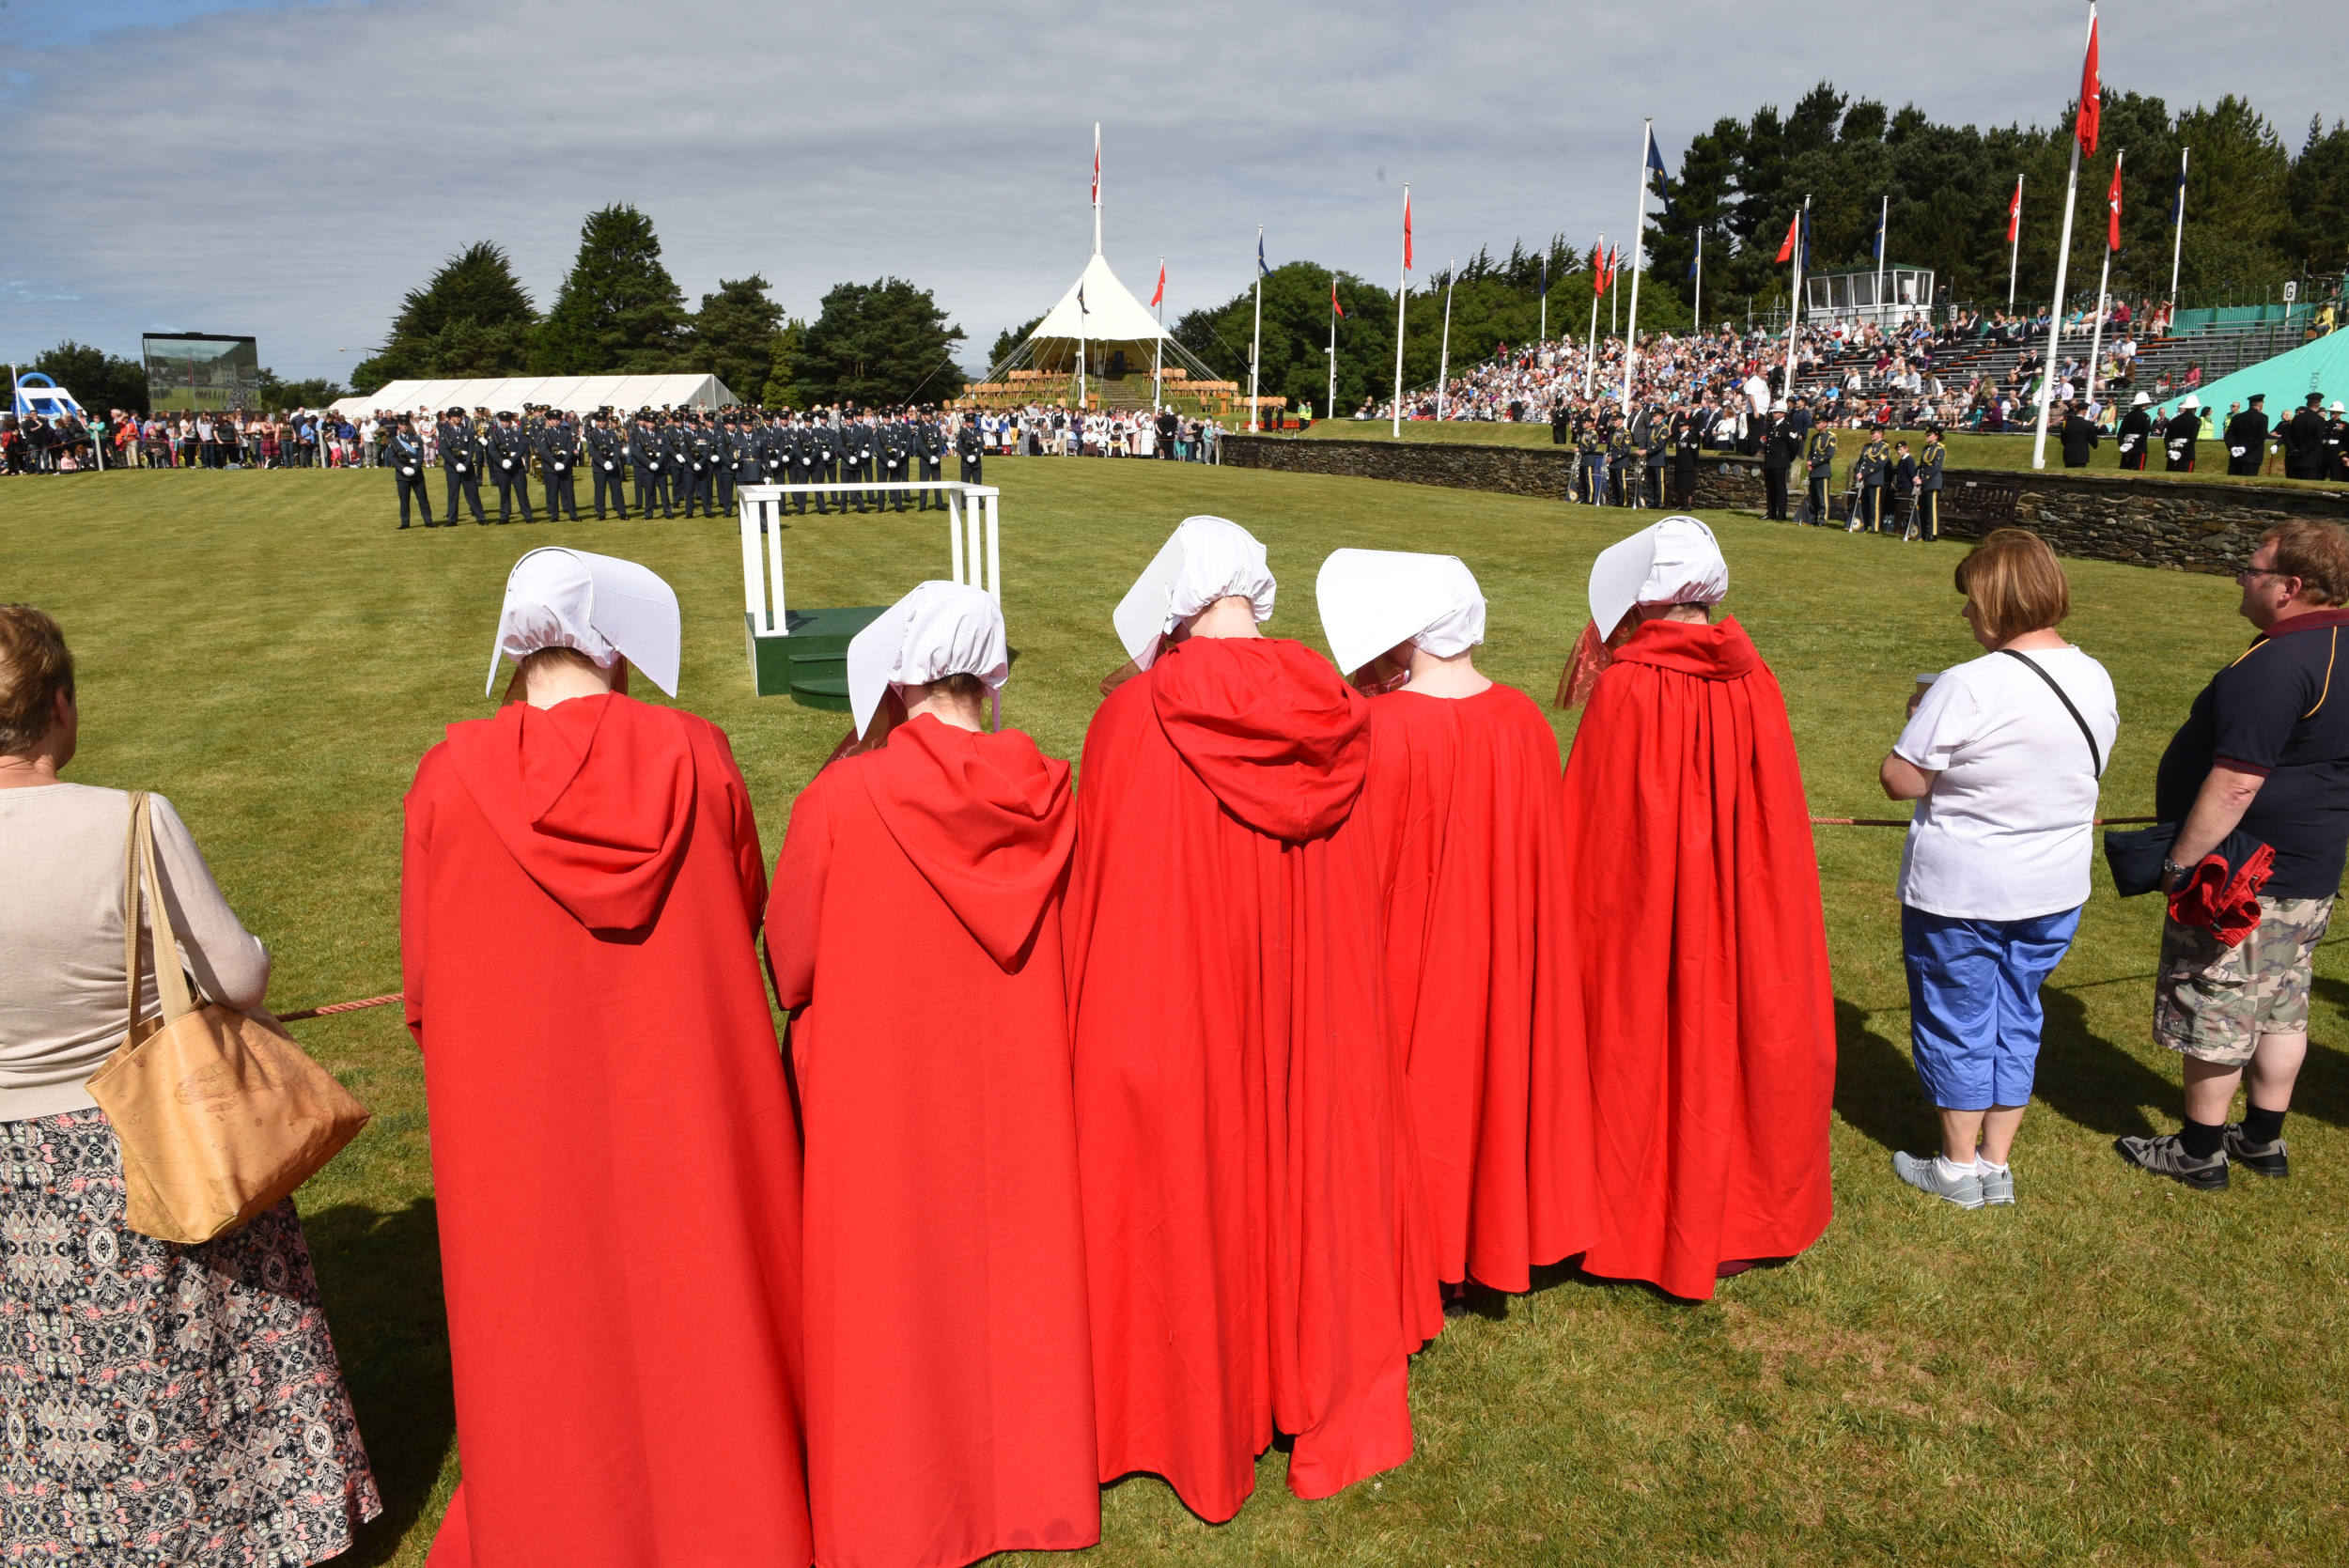 An anonymous pro-choice group, dressed as characters from the Margaret Atwood novel 'The Handmaid's Tale', hold a silent protest during Tynwald Day